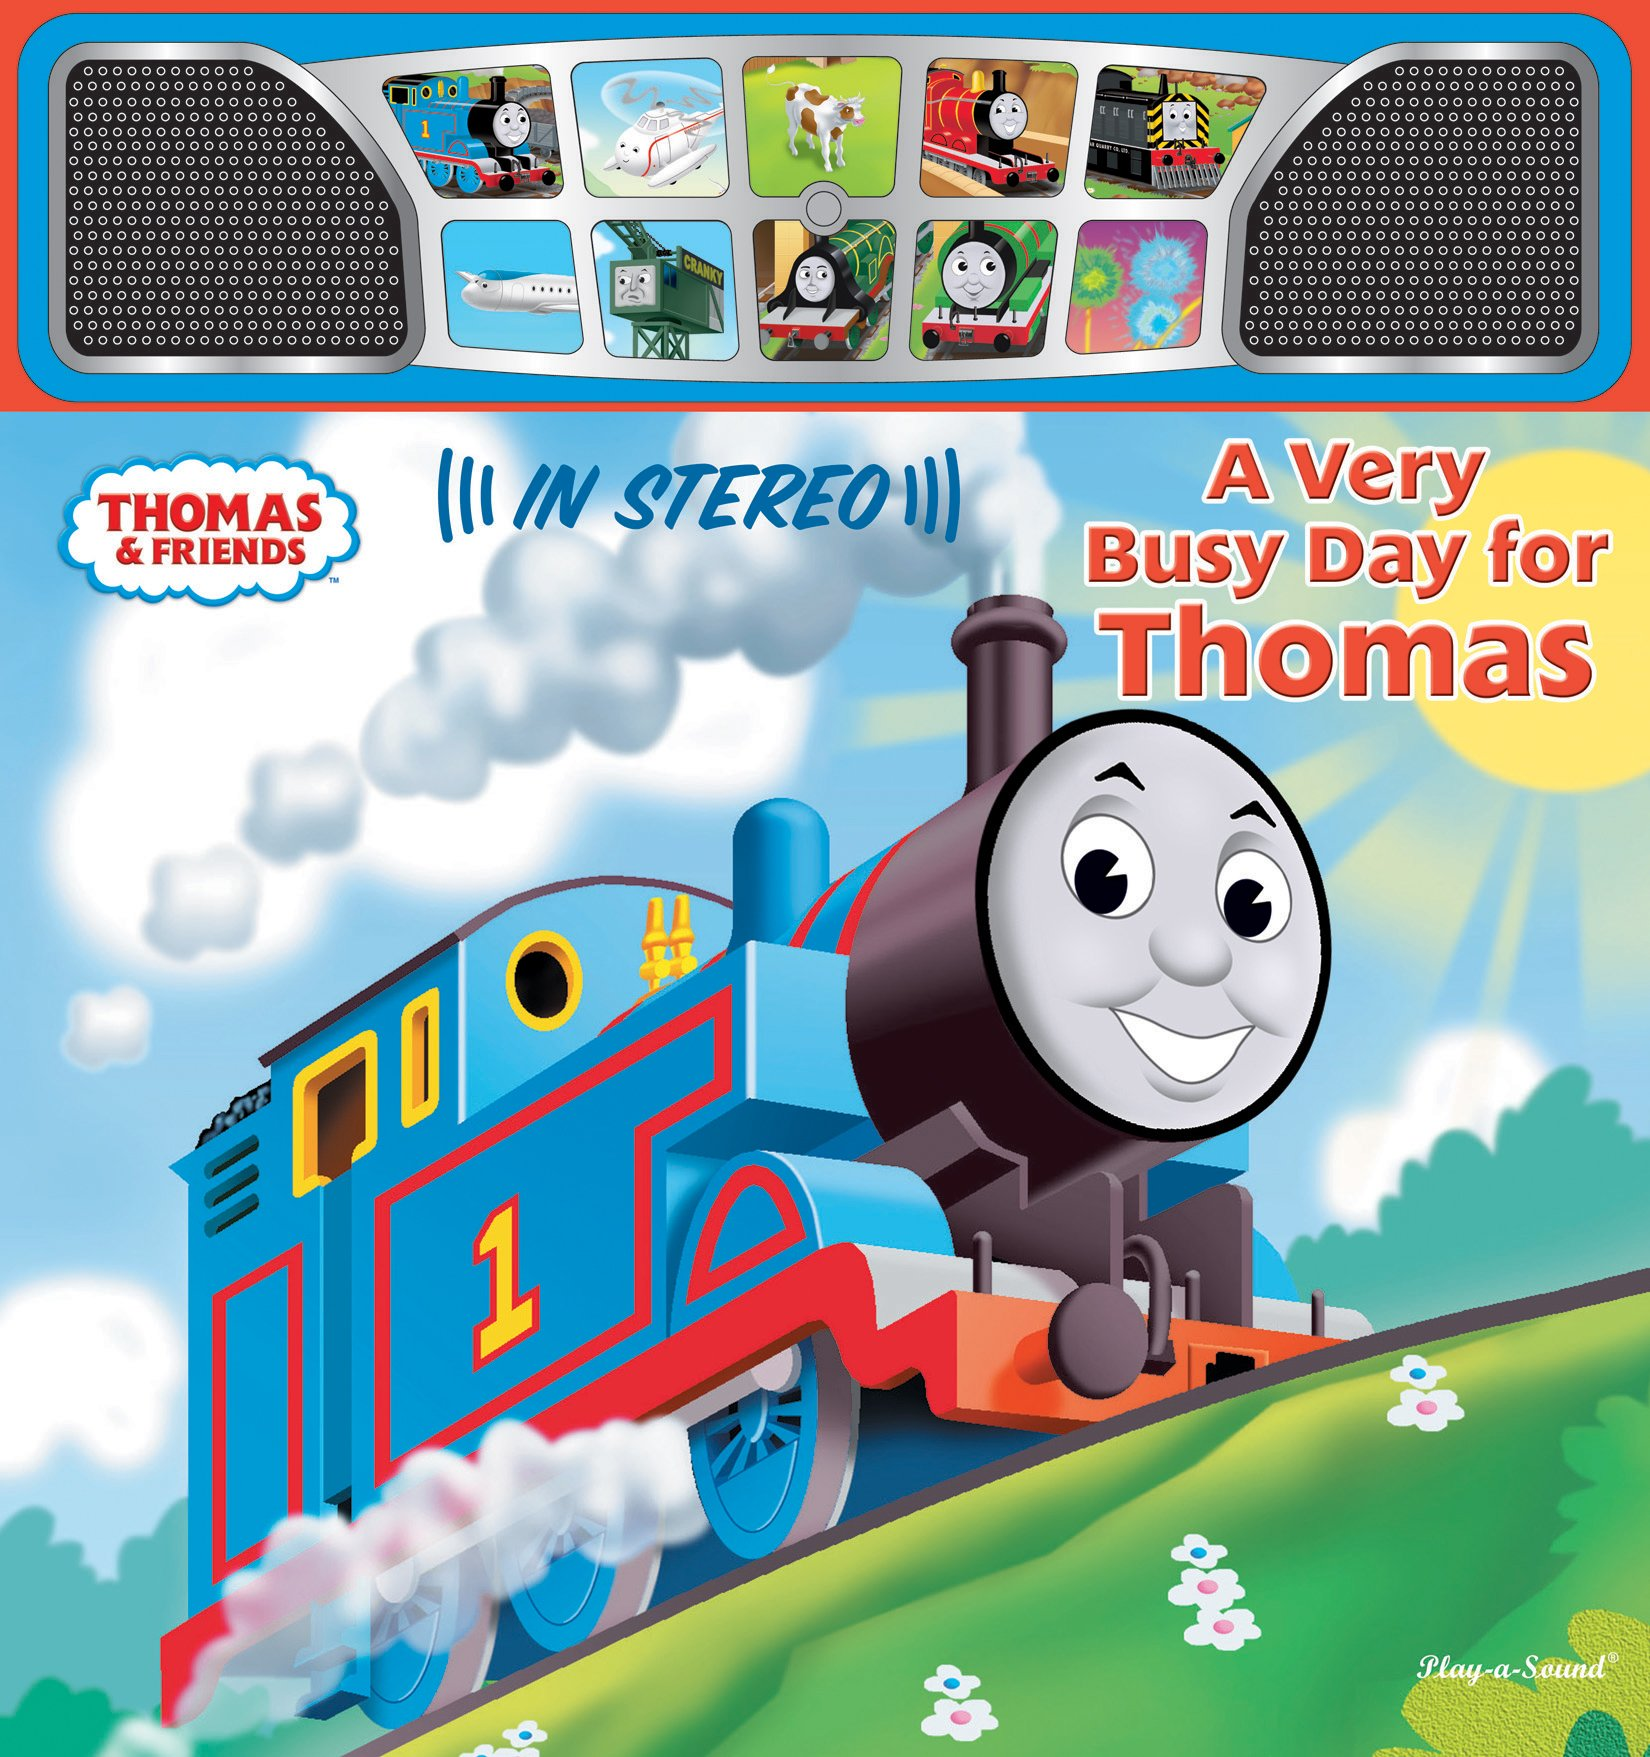 A Very Busy Day for Thomas